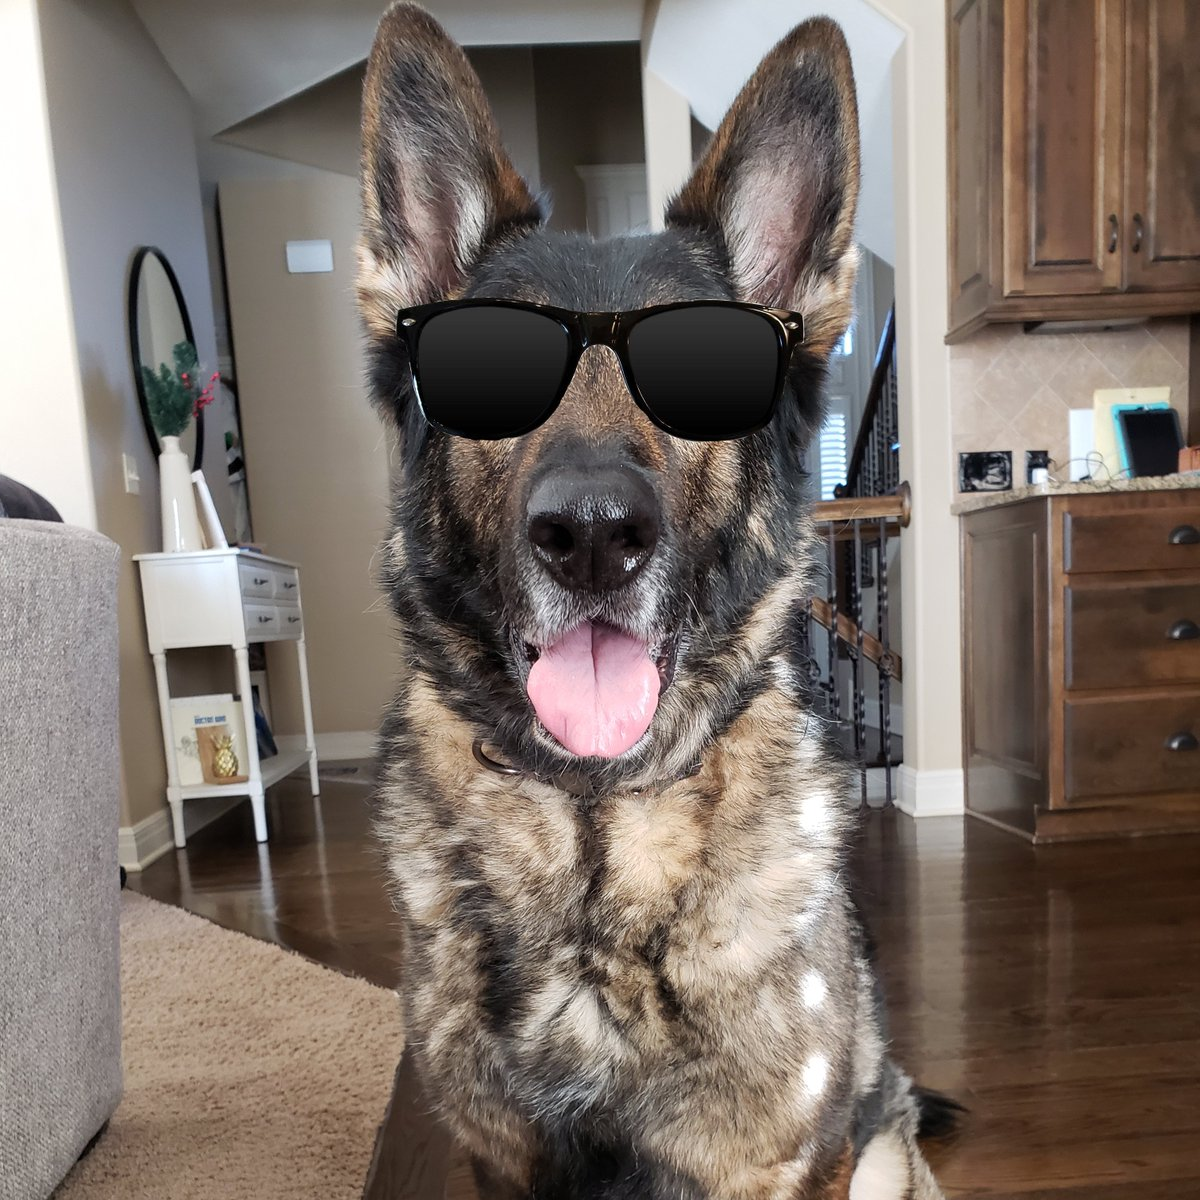 Don't let the sunglasses fool you. We see you @BTPLondon. #NationalLoveYourPetDay